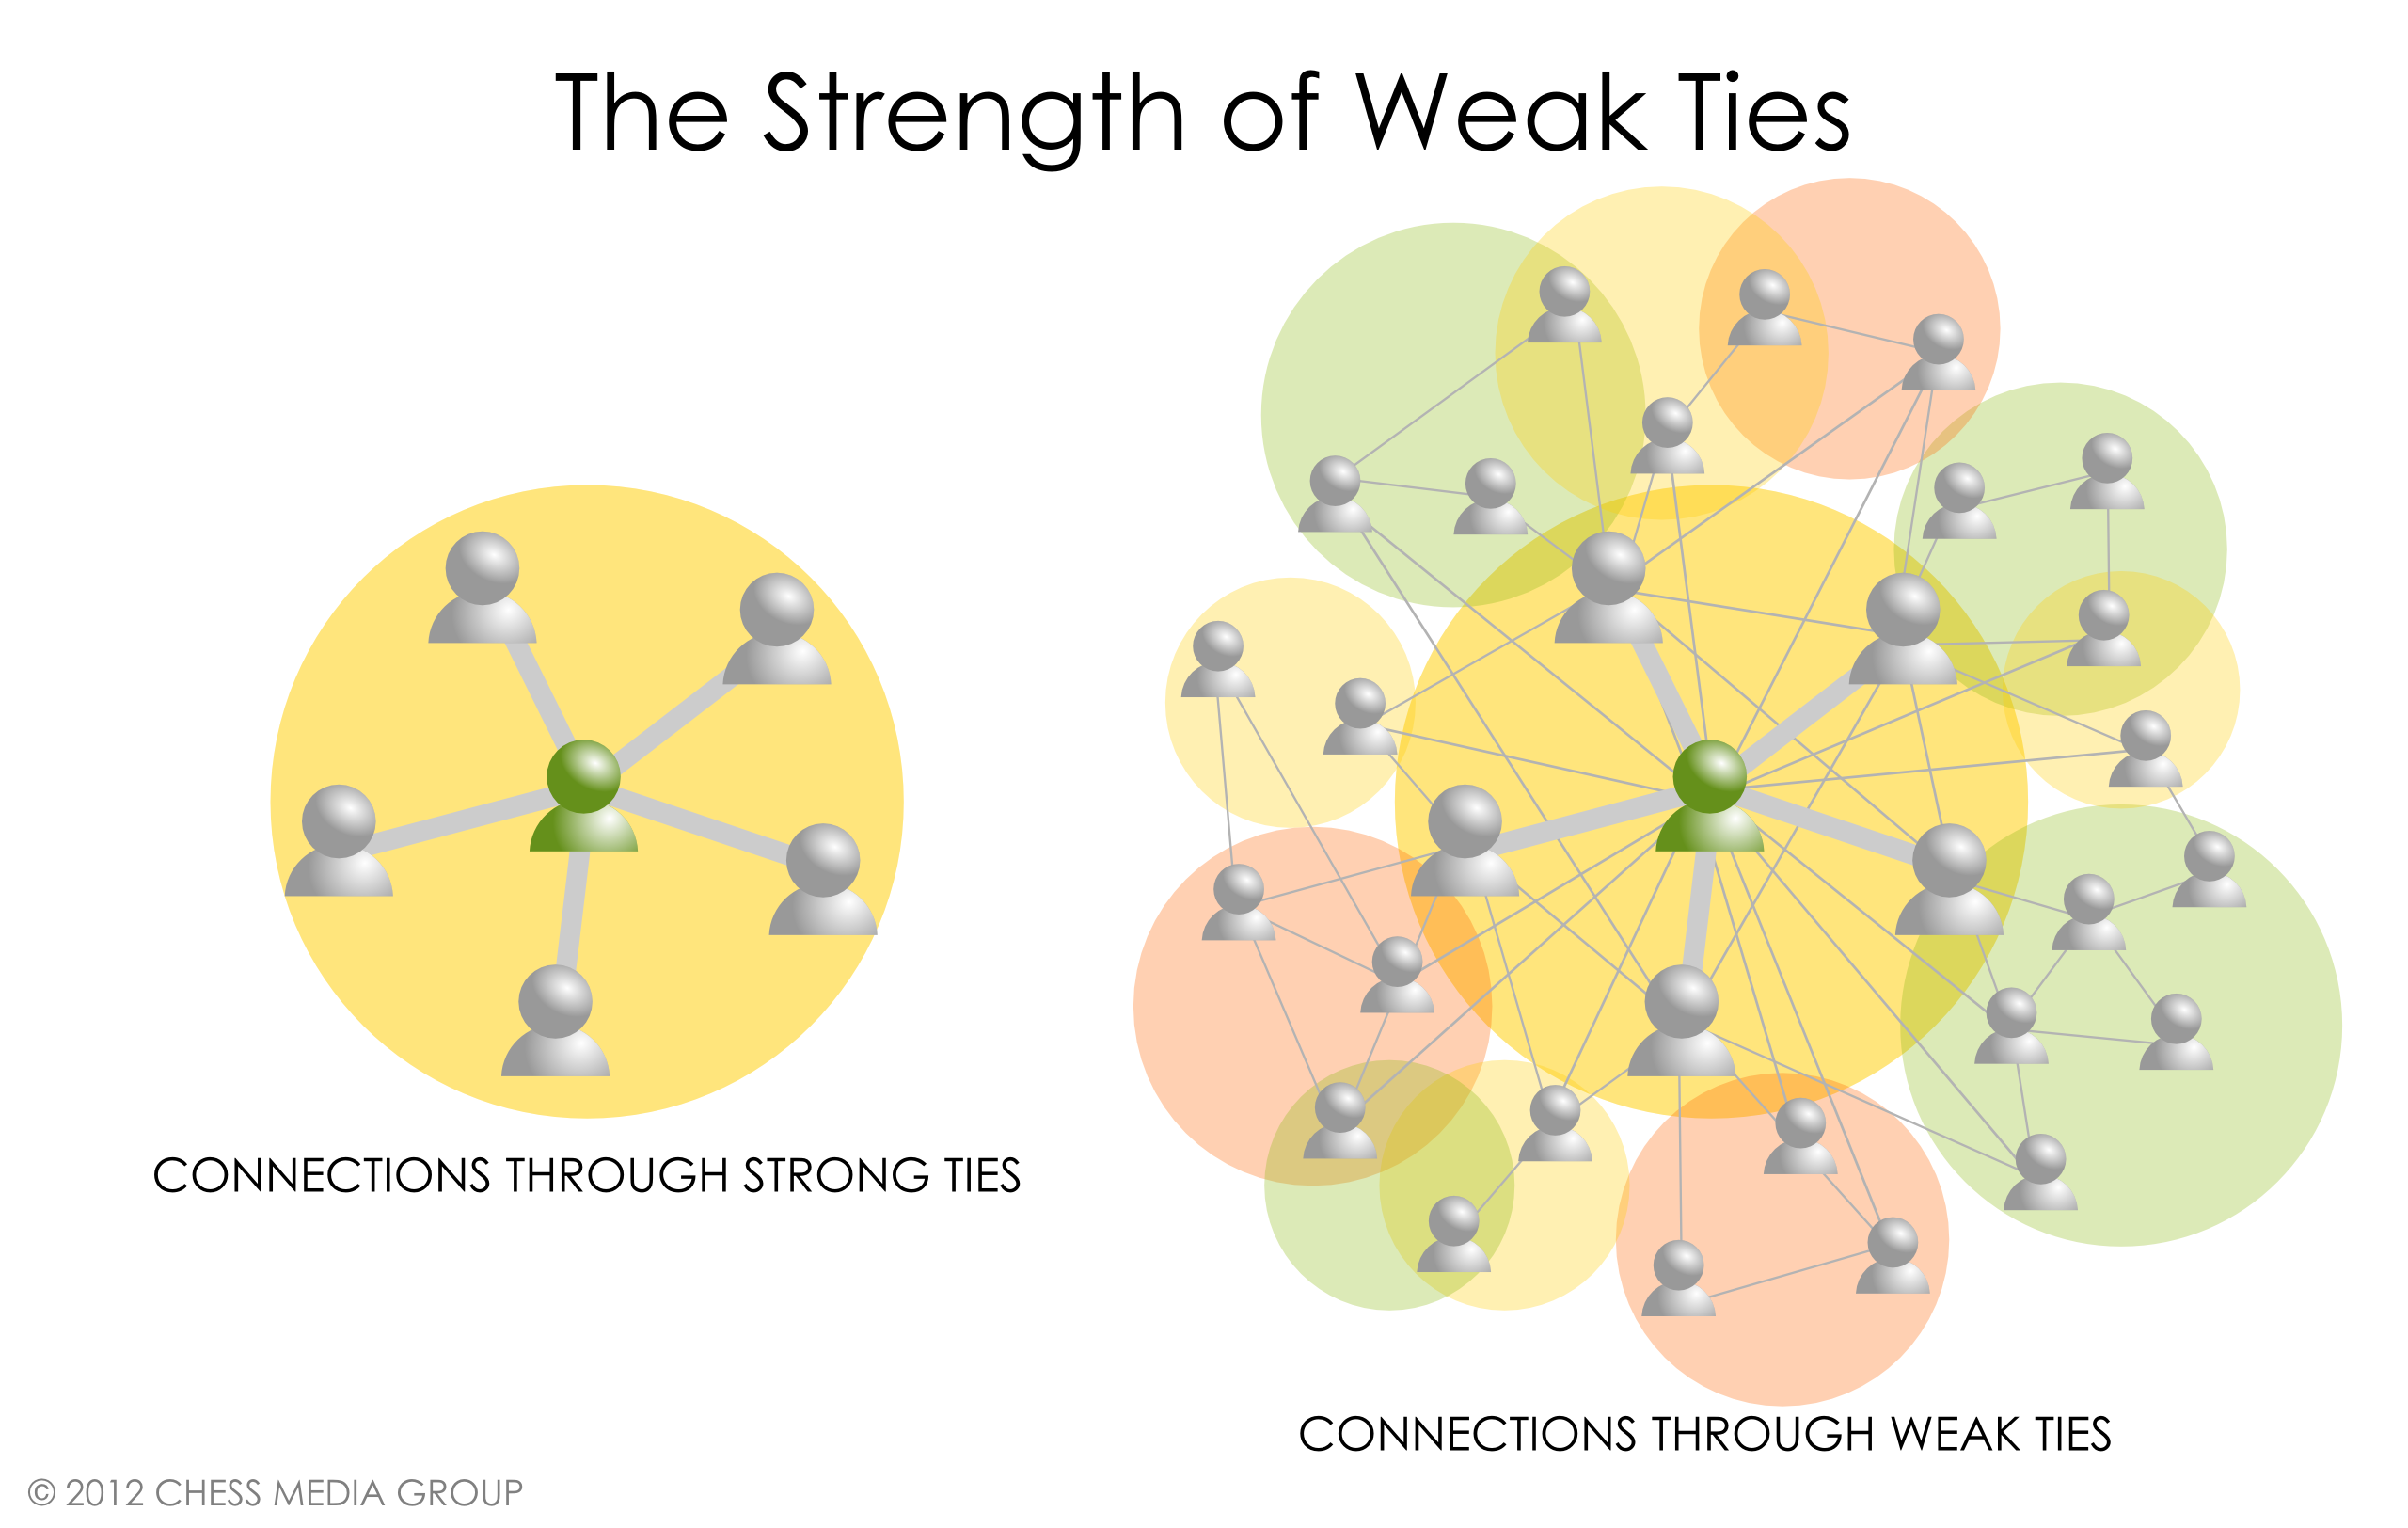 strengthofweakties-hires-2